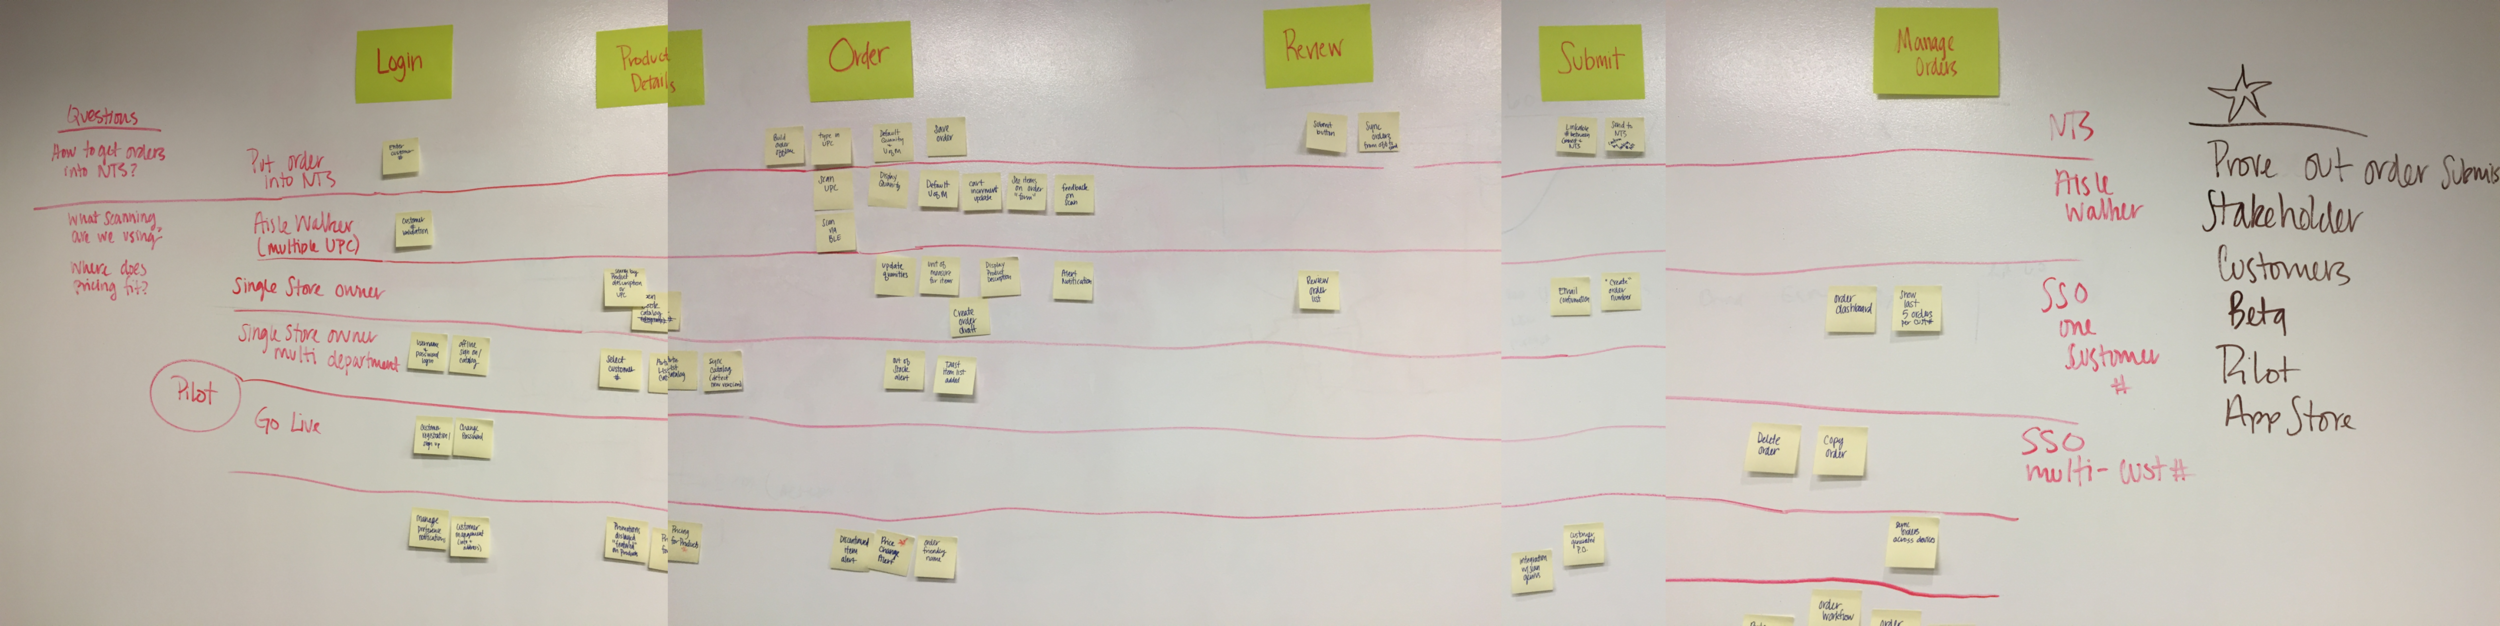 Another iteration of user story mapping. This one is zoomed in on Version 1.